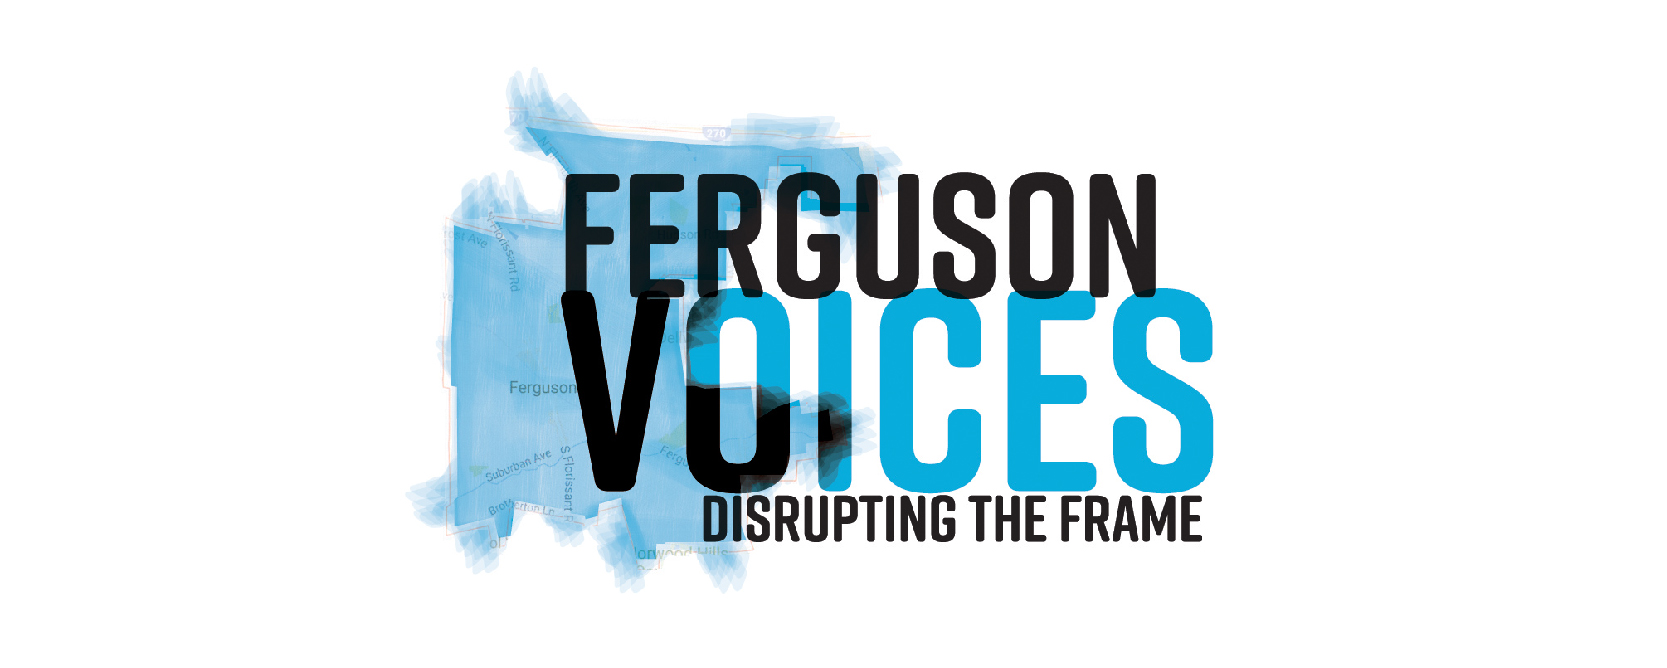 PROOF_ProjectTitles_All_Ferguson Voices Disrupting the Frame.jpg